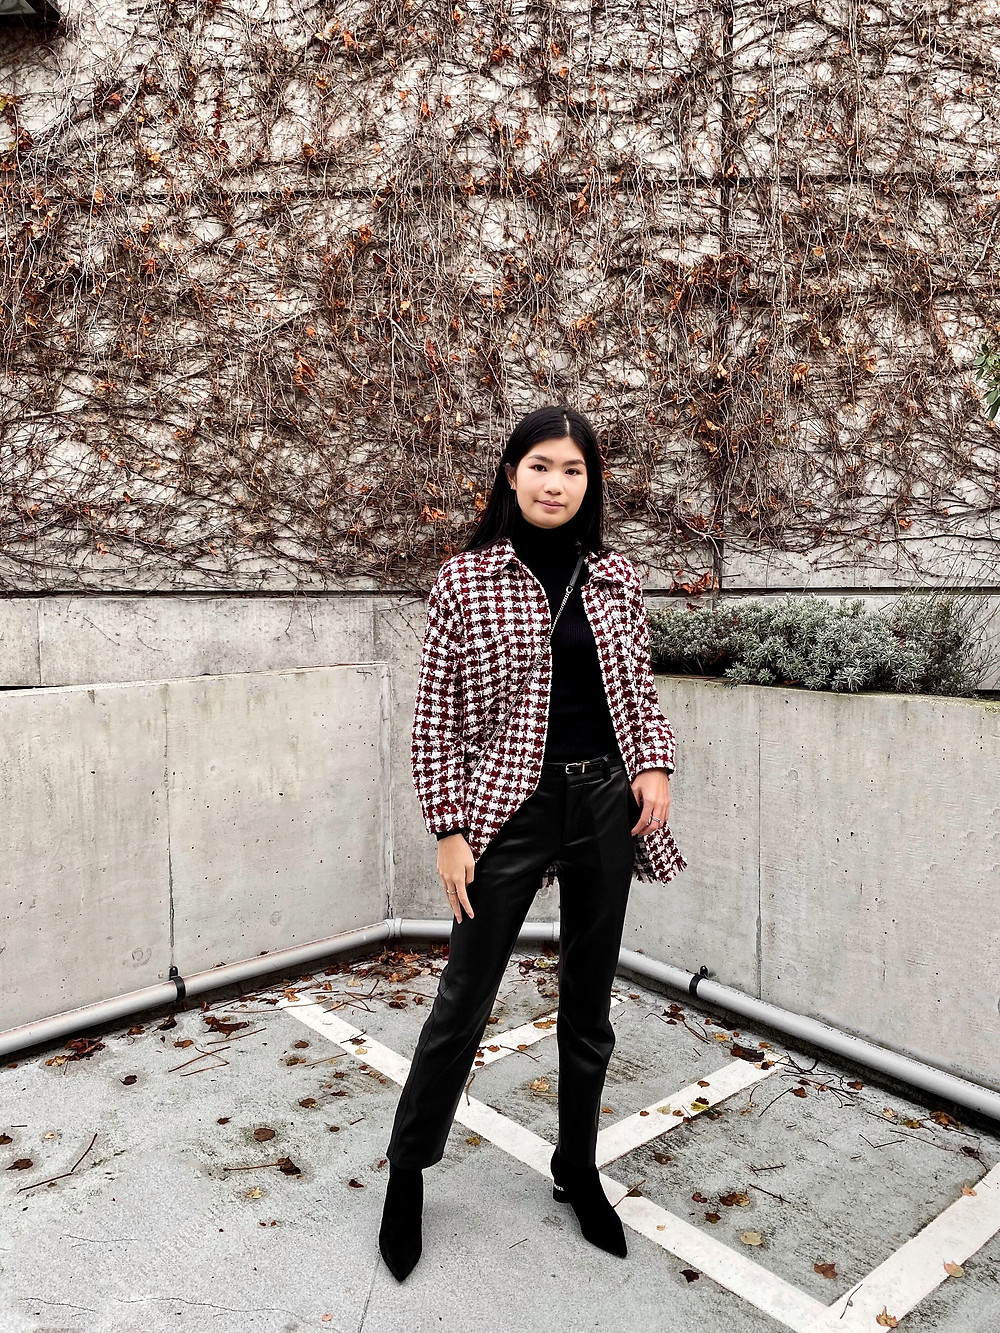 OOTD styling the Zara black leather straight leg pants with a black turtleneck and red houndstooth shacket